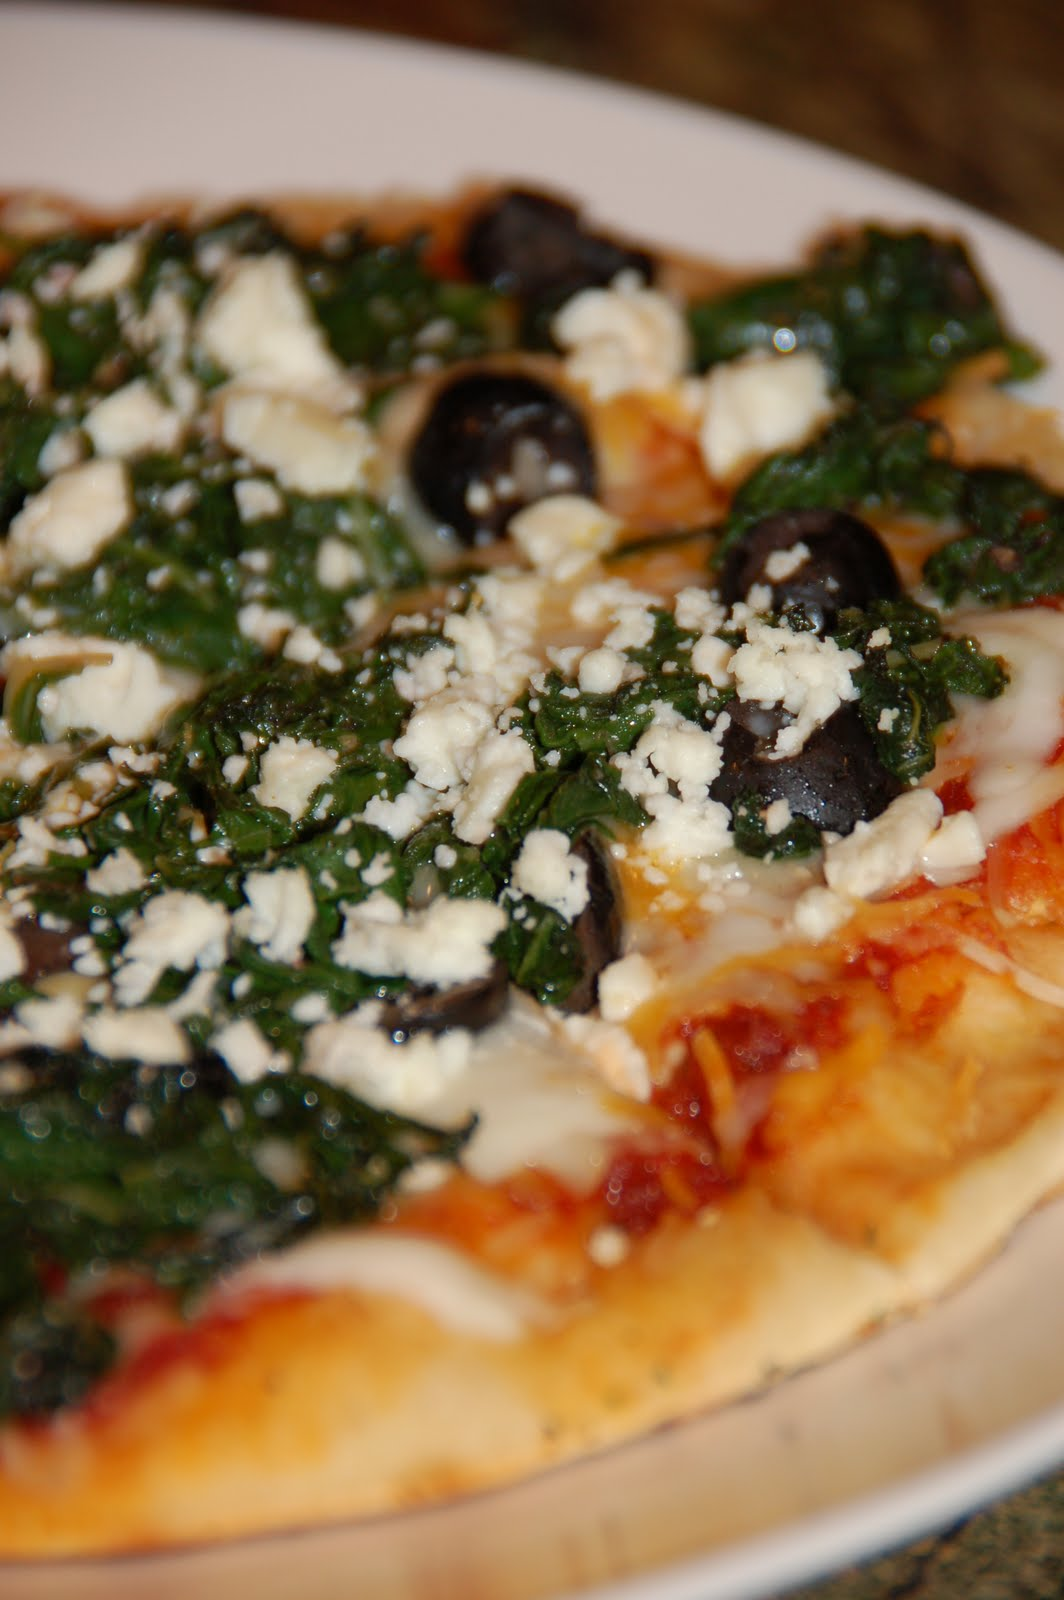 Guinnah: Grilled Pizza with Swiss Chard, Black Olives and Feta